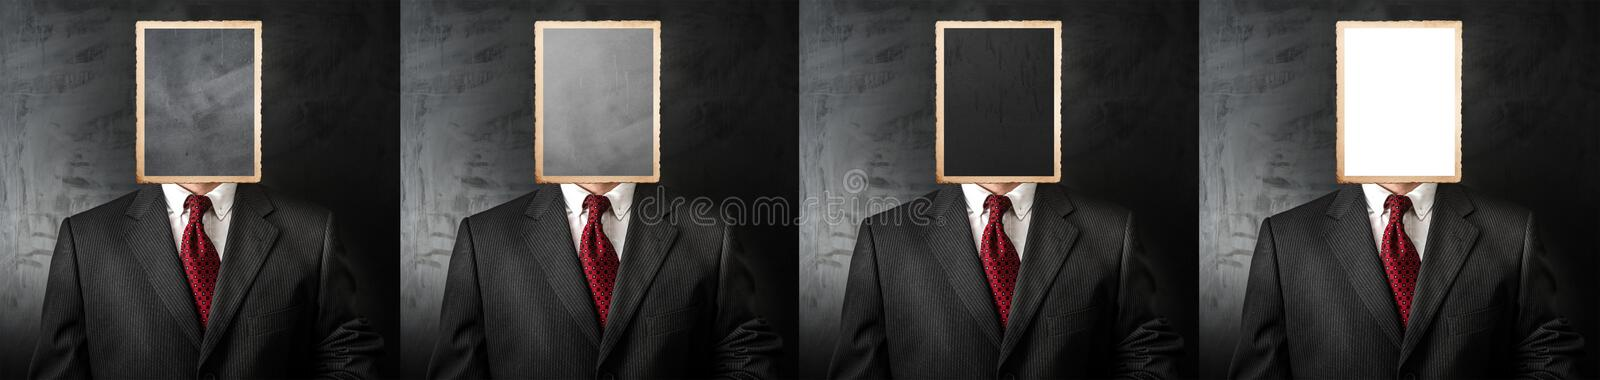 Four candidates job interview royalty free stock photography